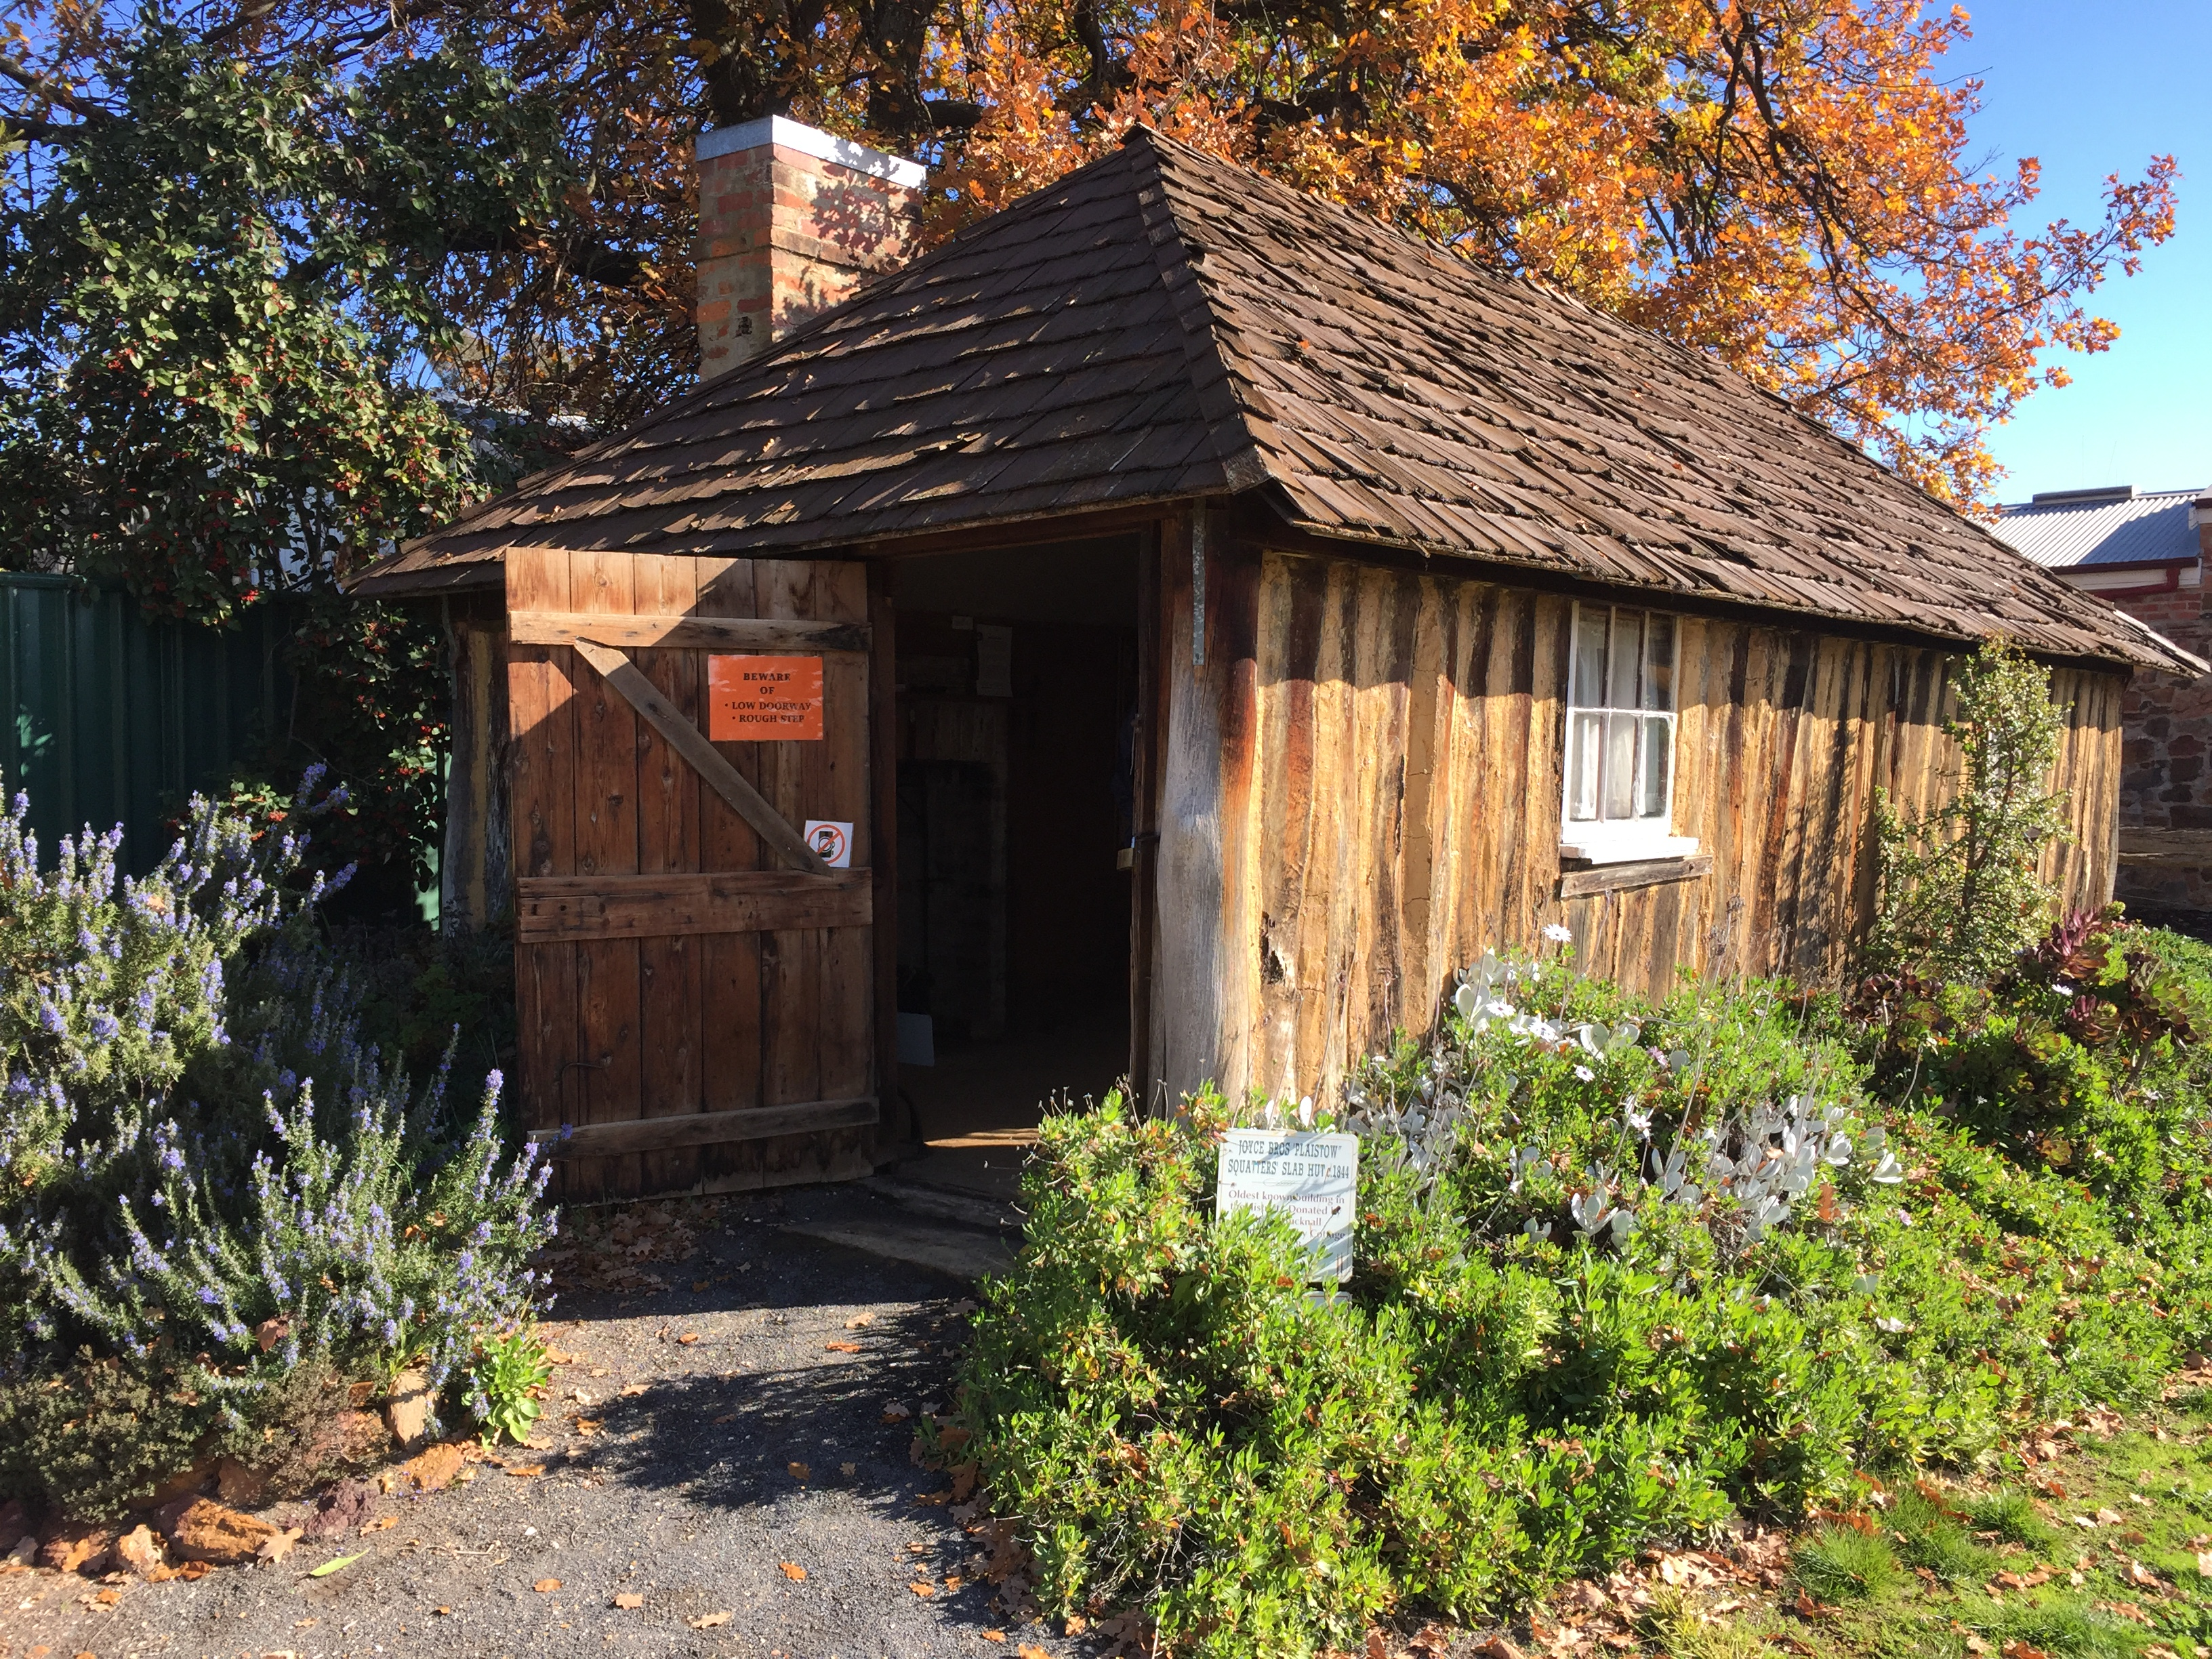 Slab hut from 1840s, relocated and restored